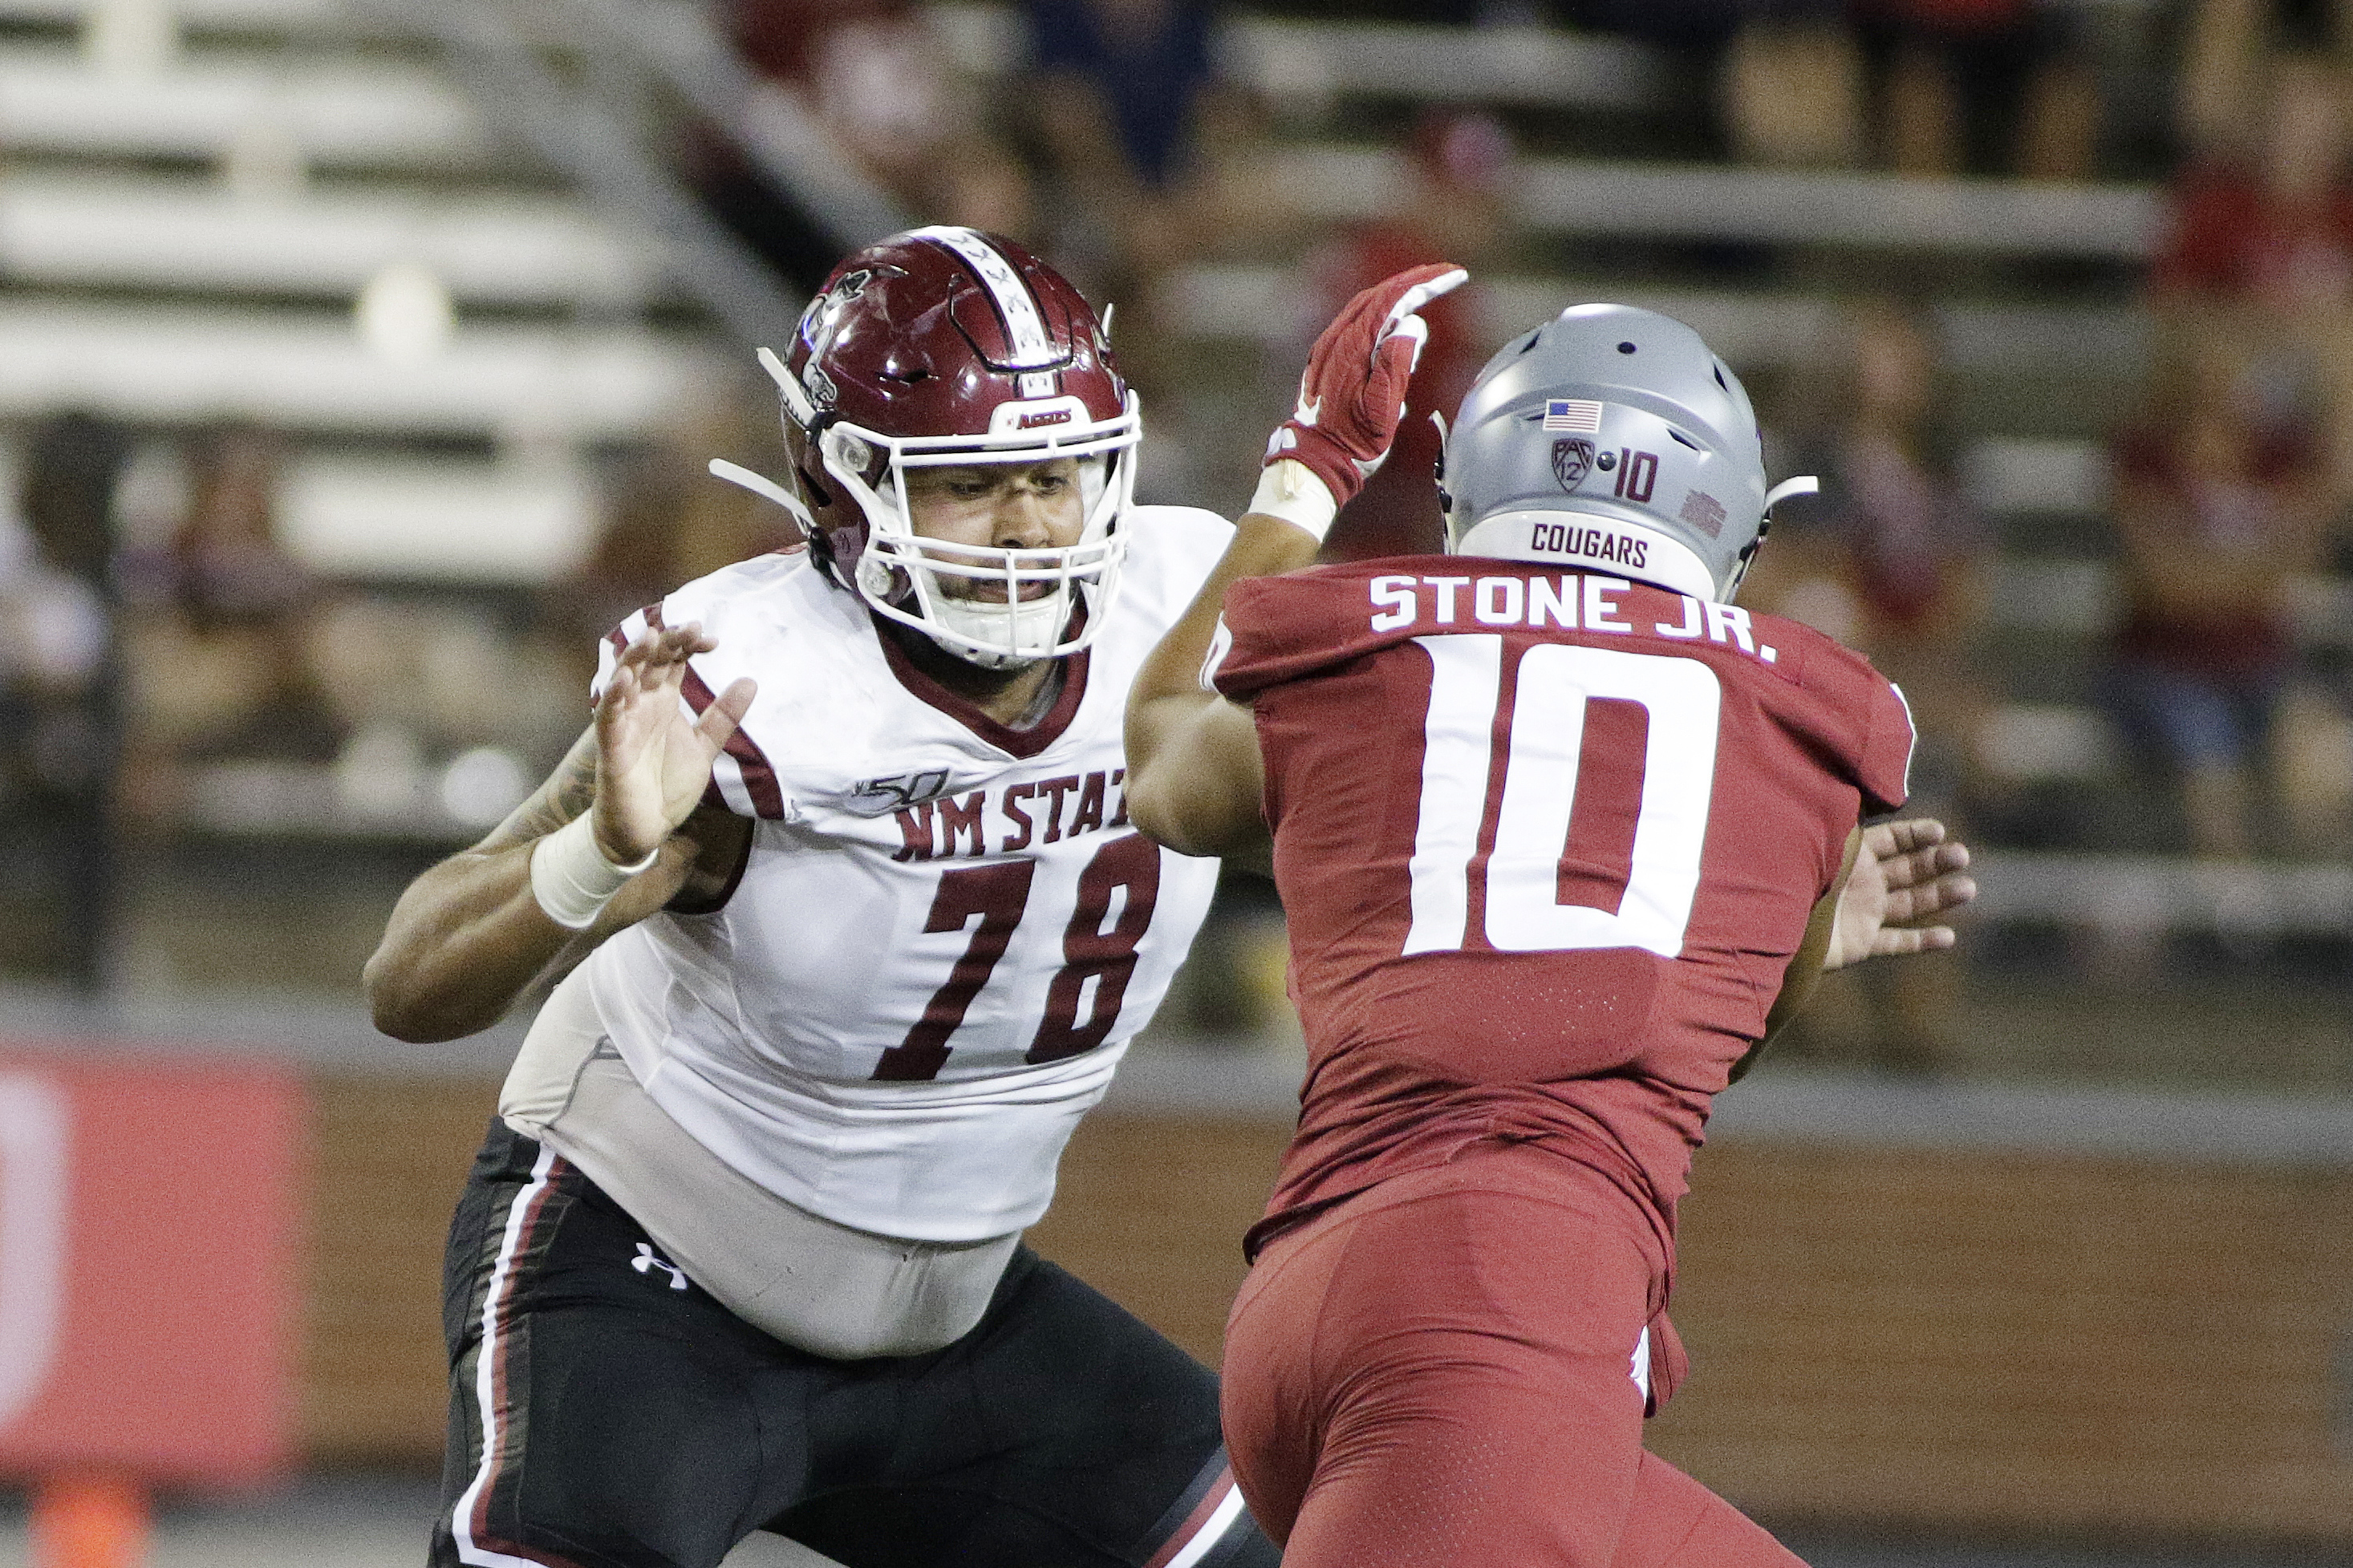 Aggies' Trujillo excited for ABQ homecoming